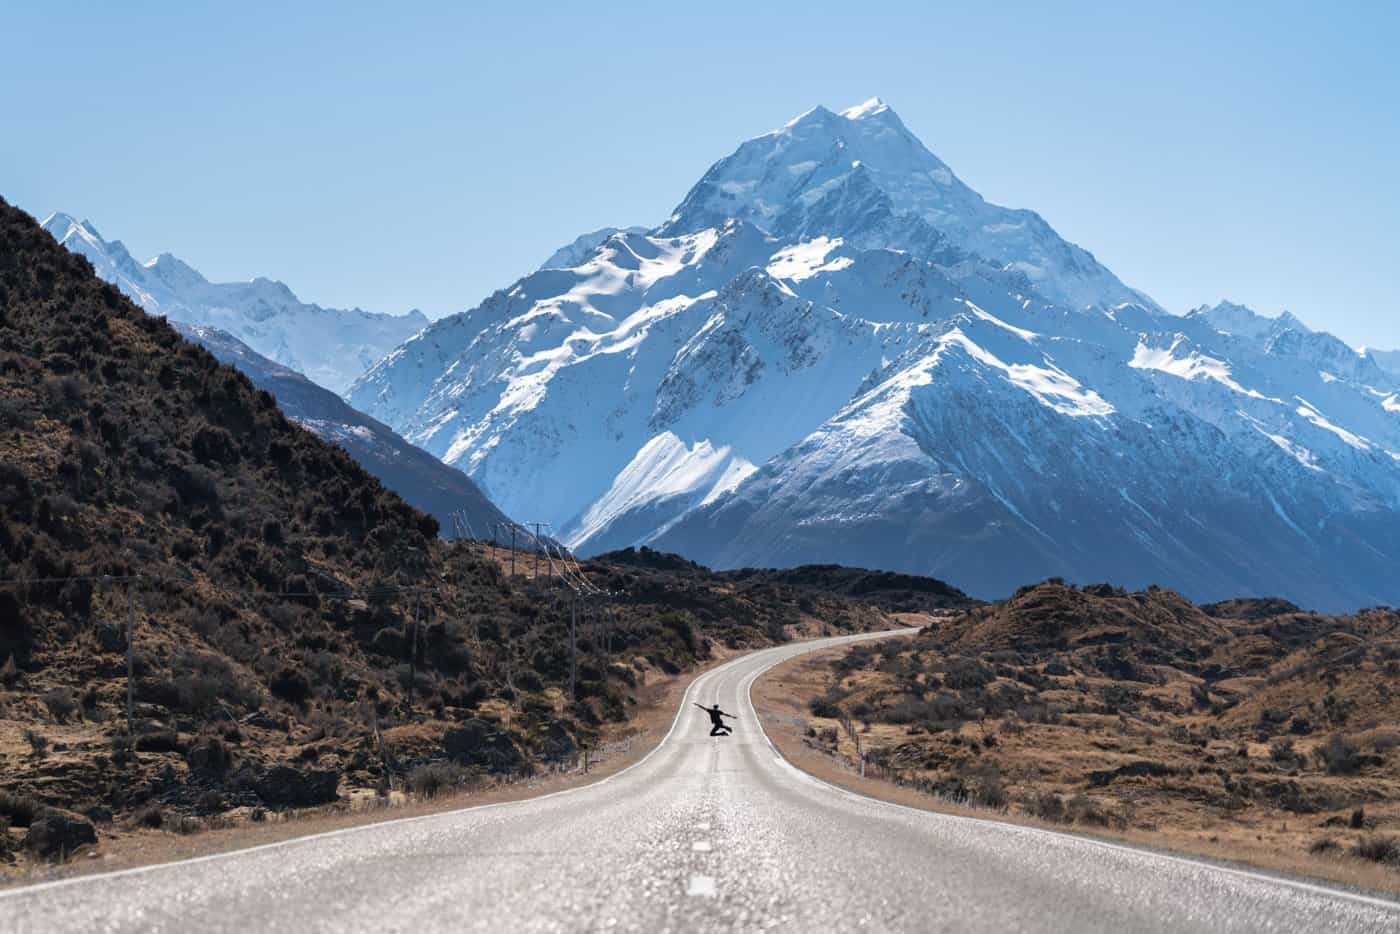 The road to Mt Cook is recommended in our 7 day New Zealand South Island itinerary